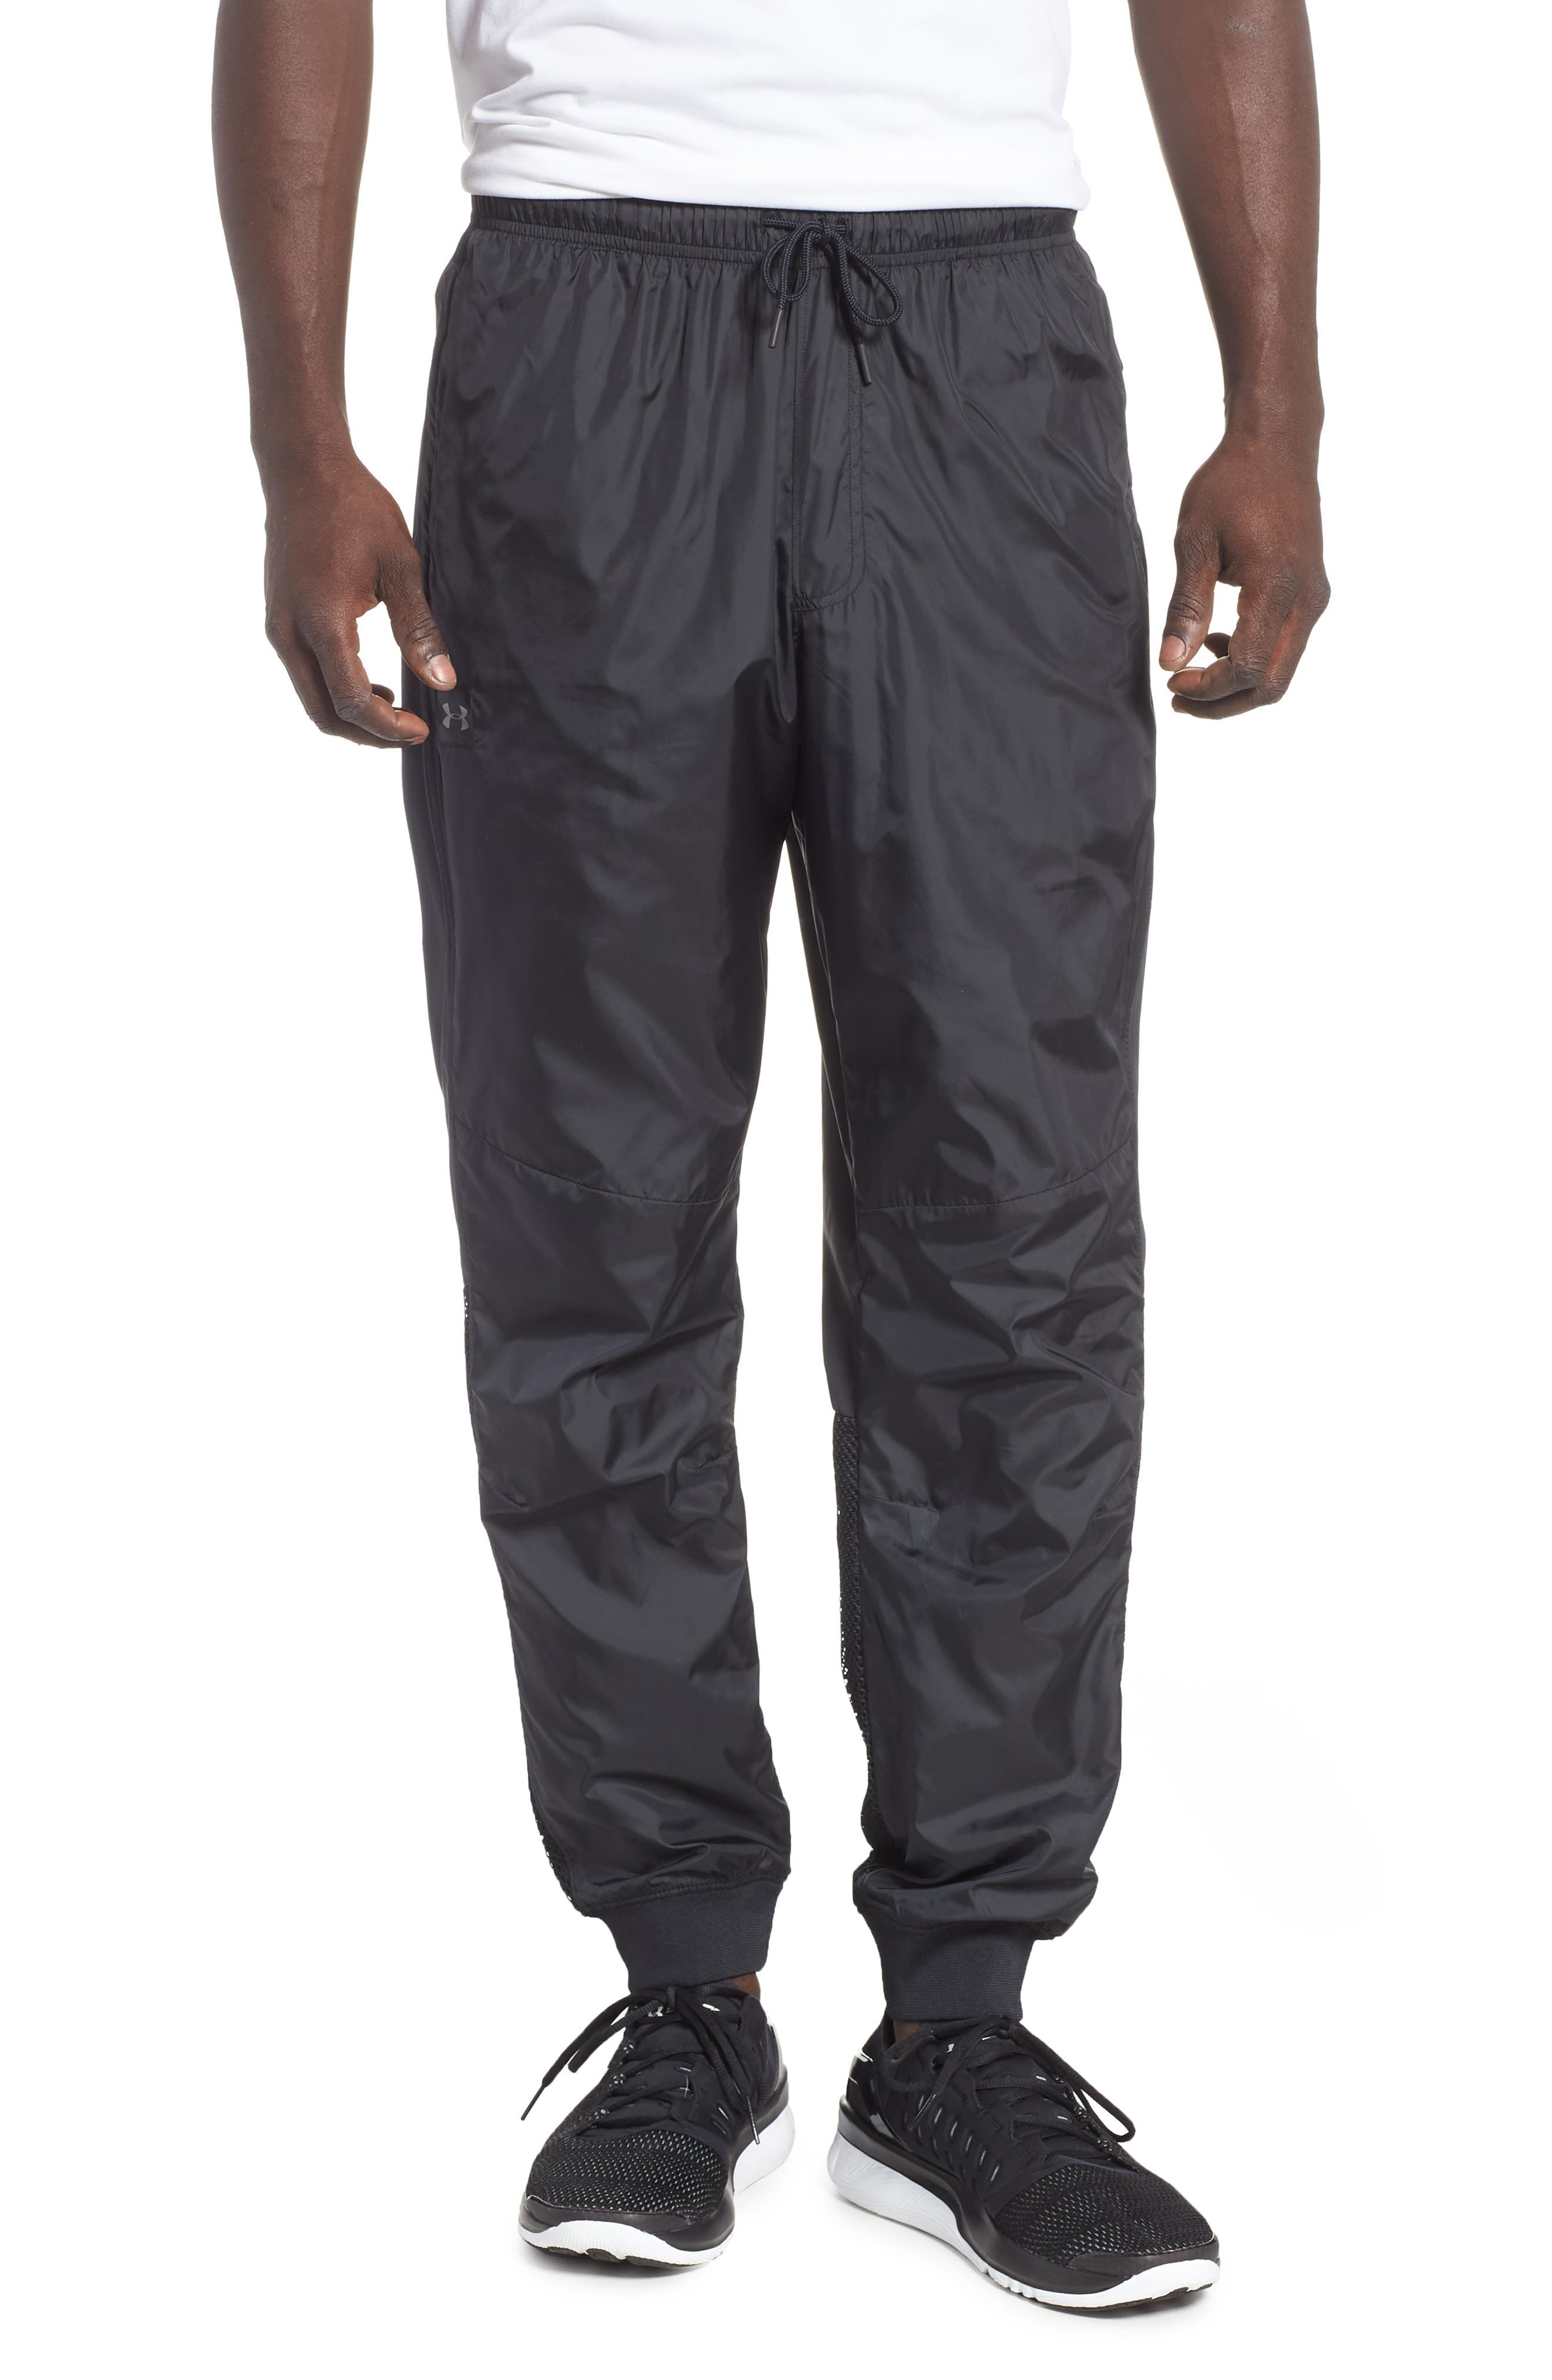 Under Armour Sportstyle Wind Pants, Black